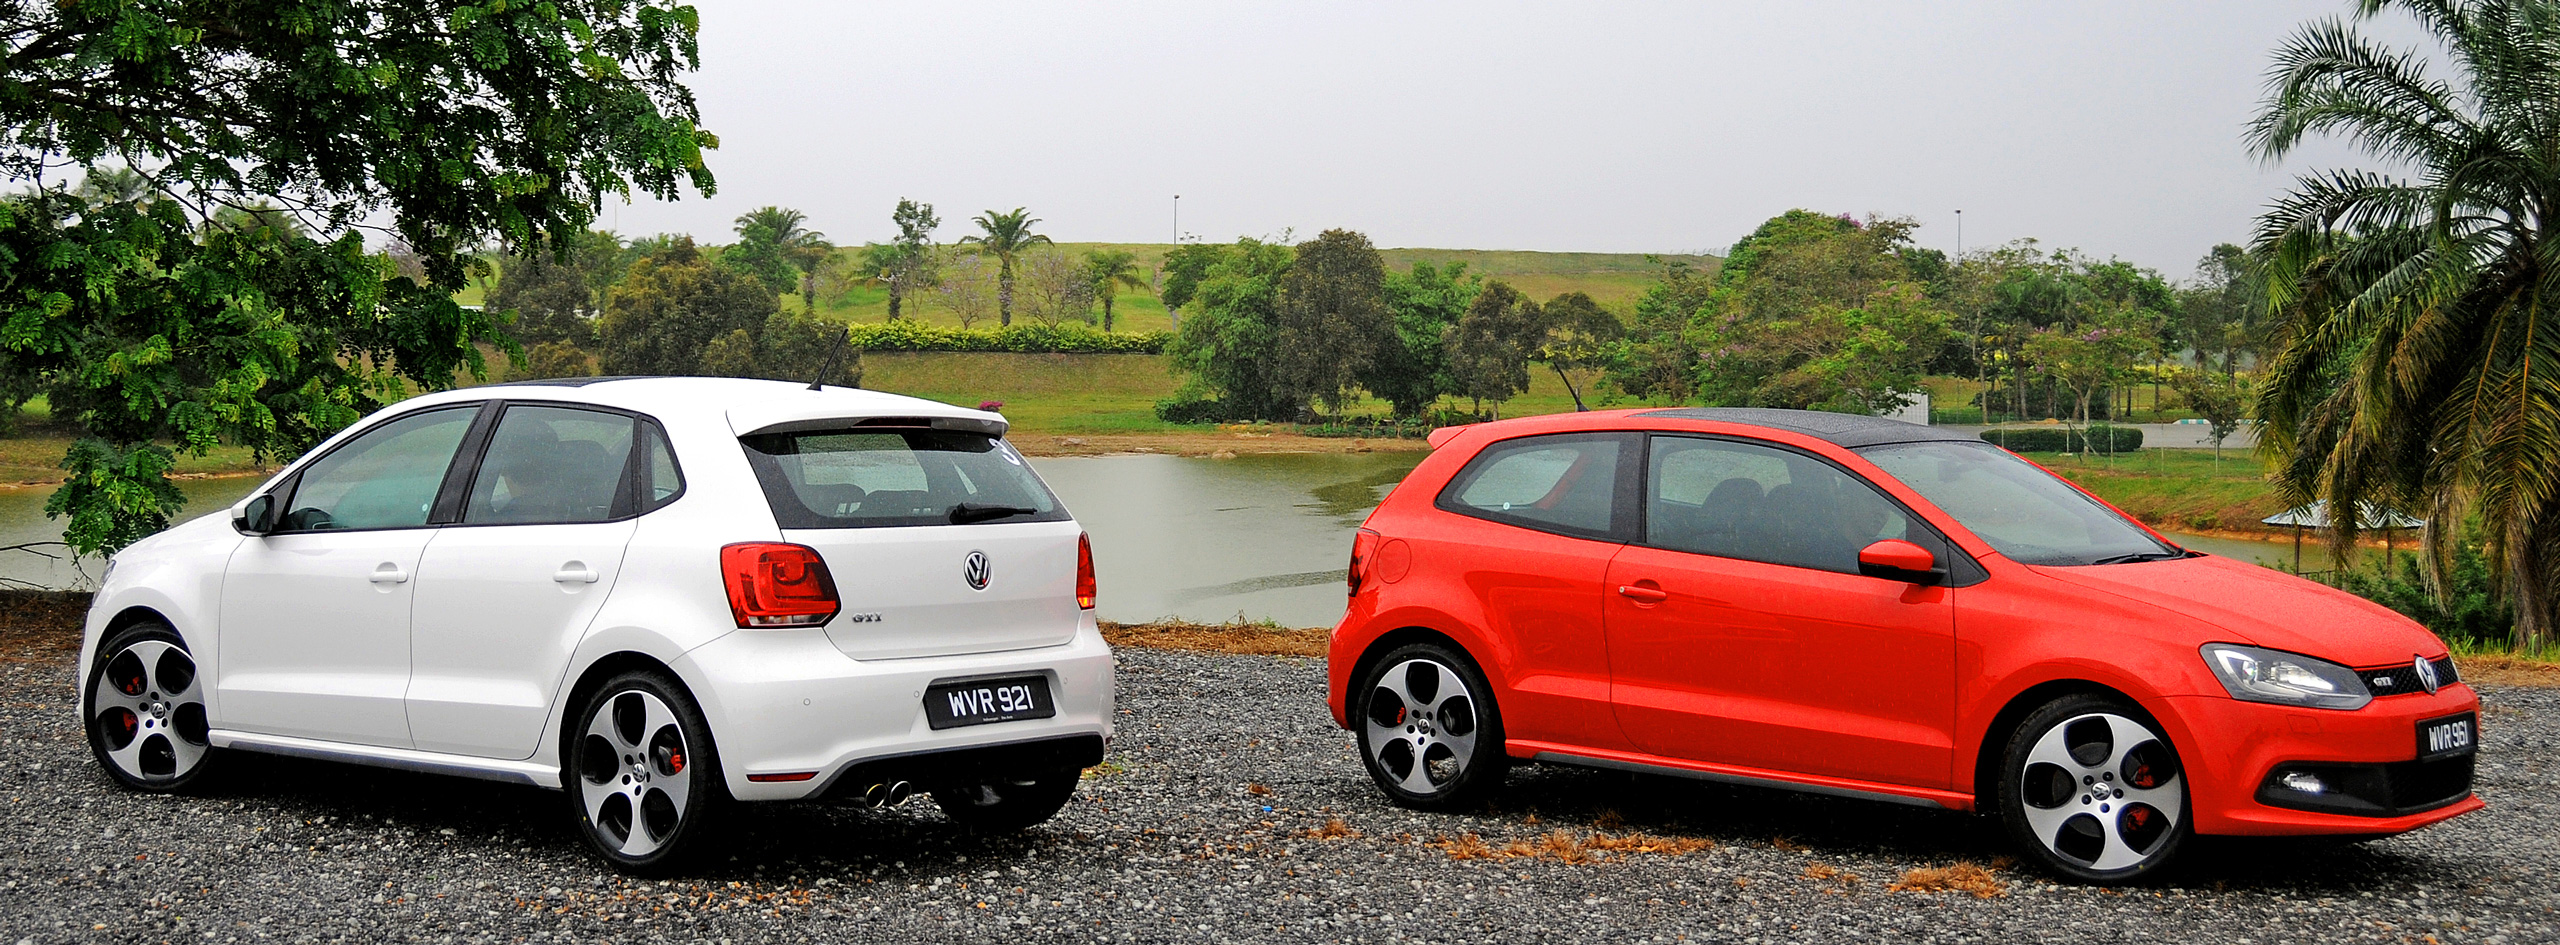 2018 Gti S >> VW Polo GTI prices updated again – now RM152-155k Image 173649